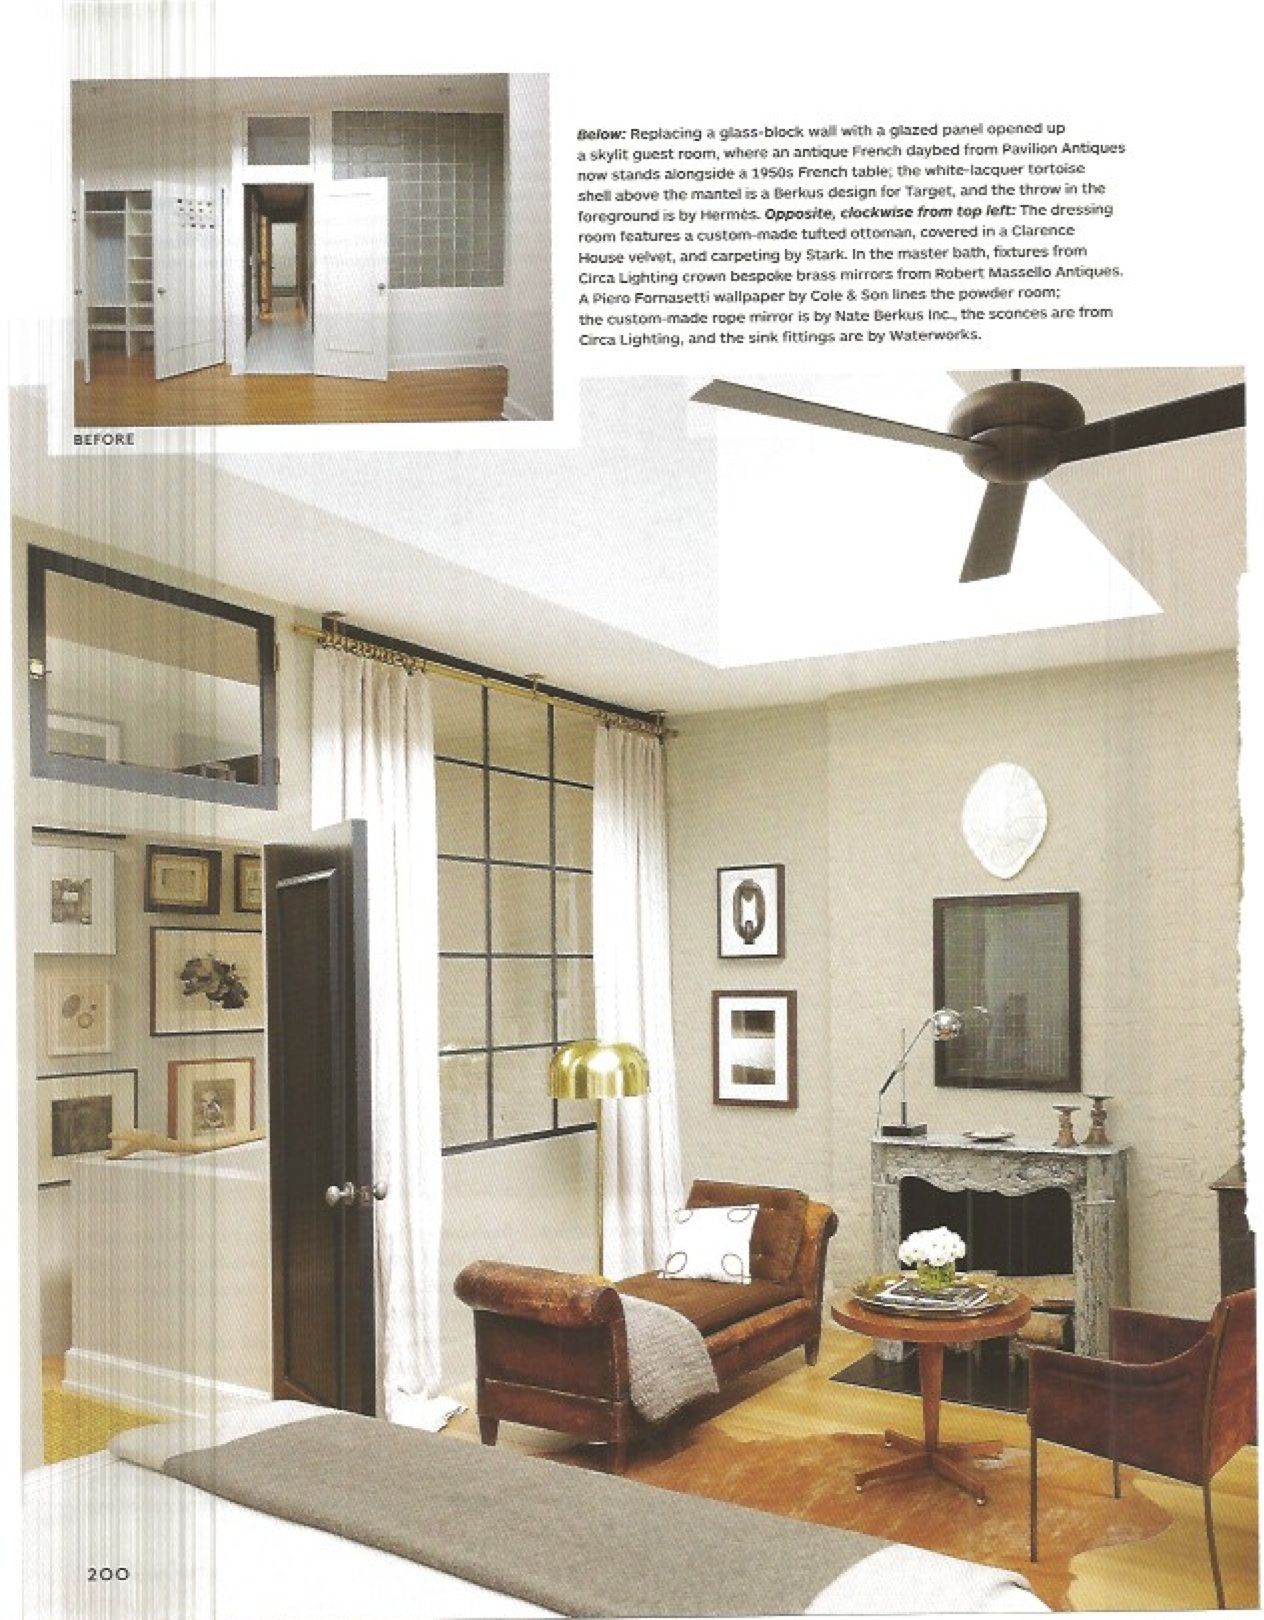 Another fan for a modern or contemporary room